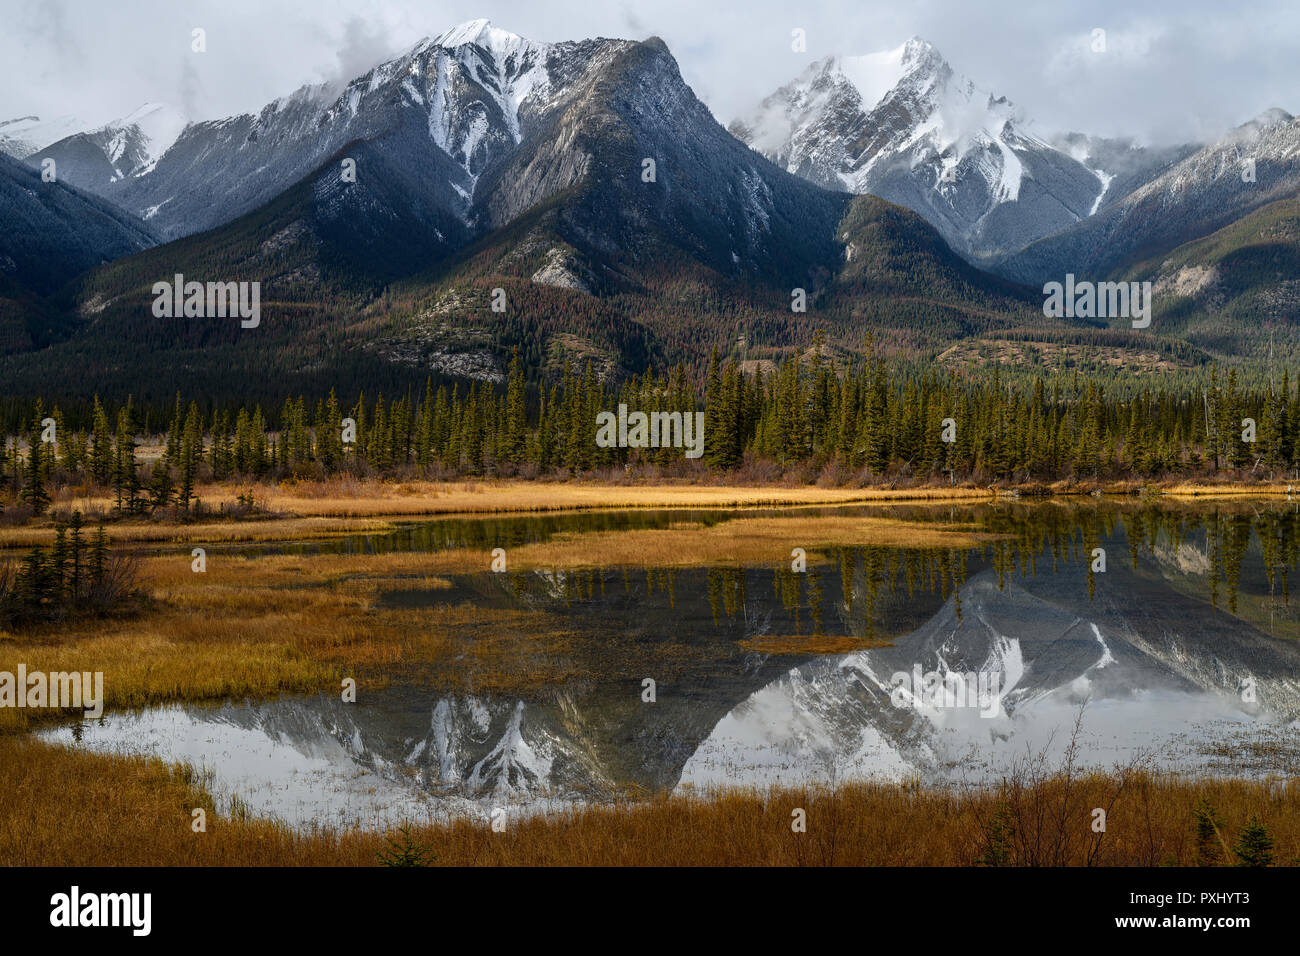 Whitecap Stock Photos & Whitecap Stock Images - Alamy